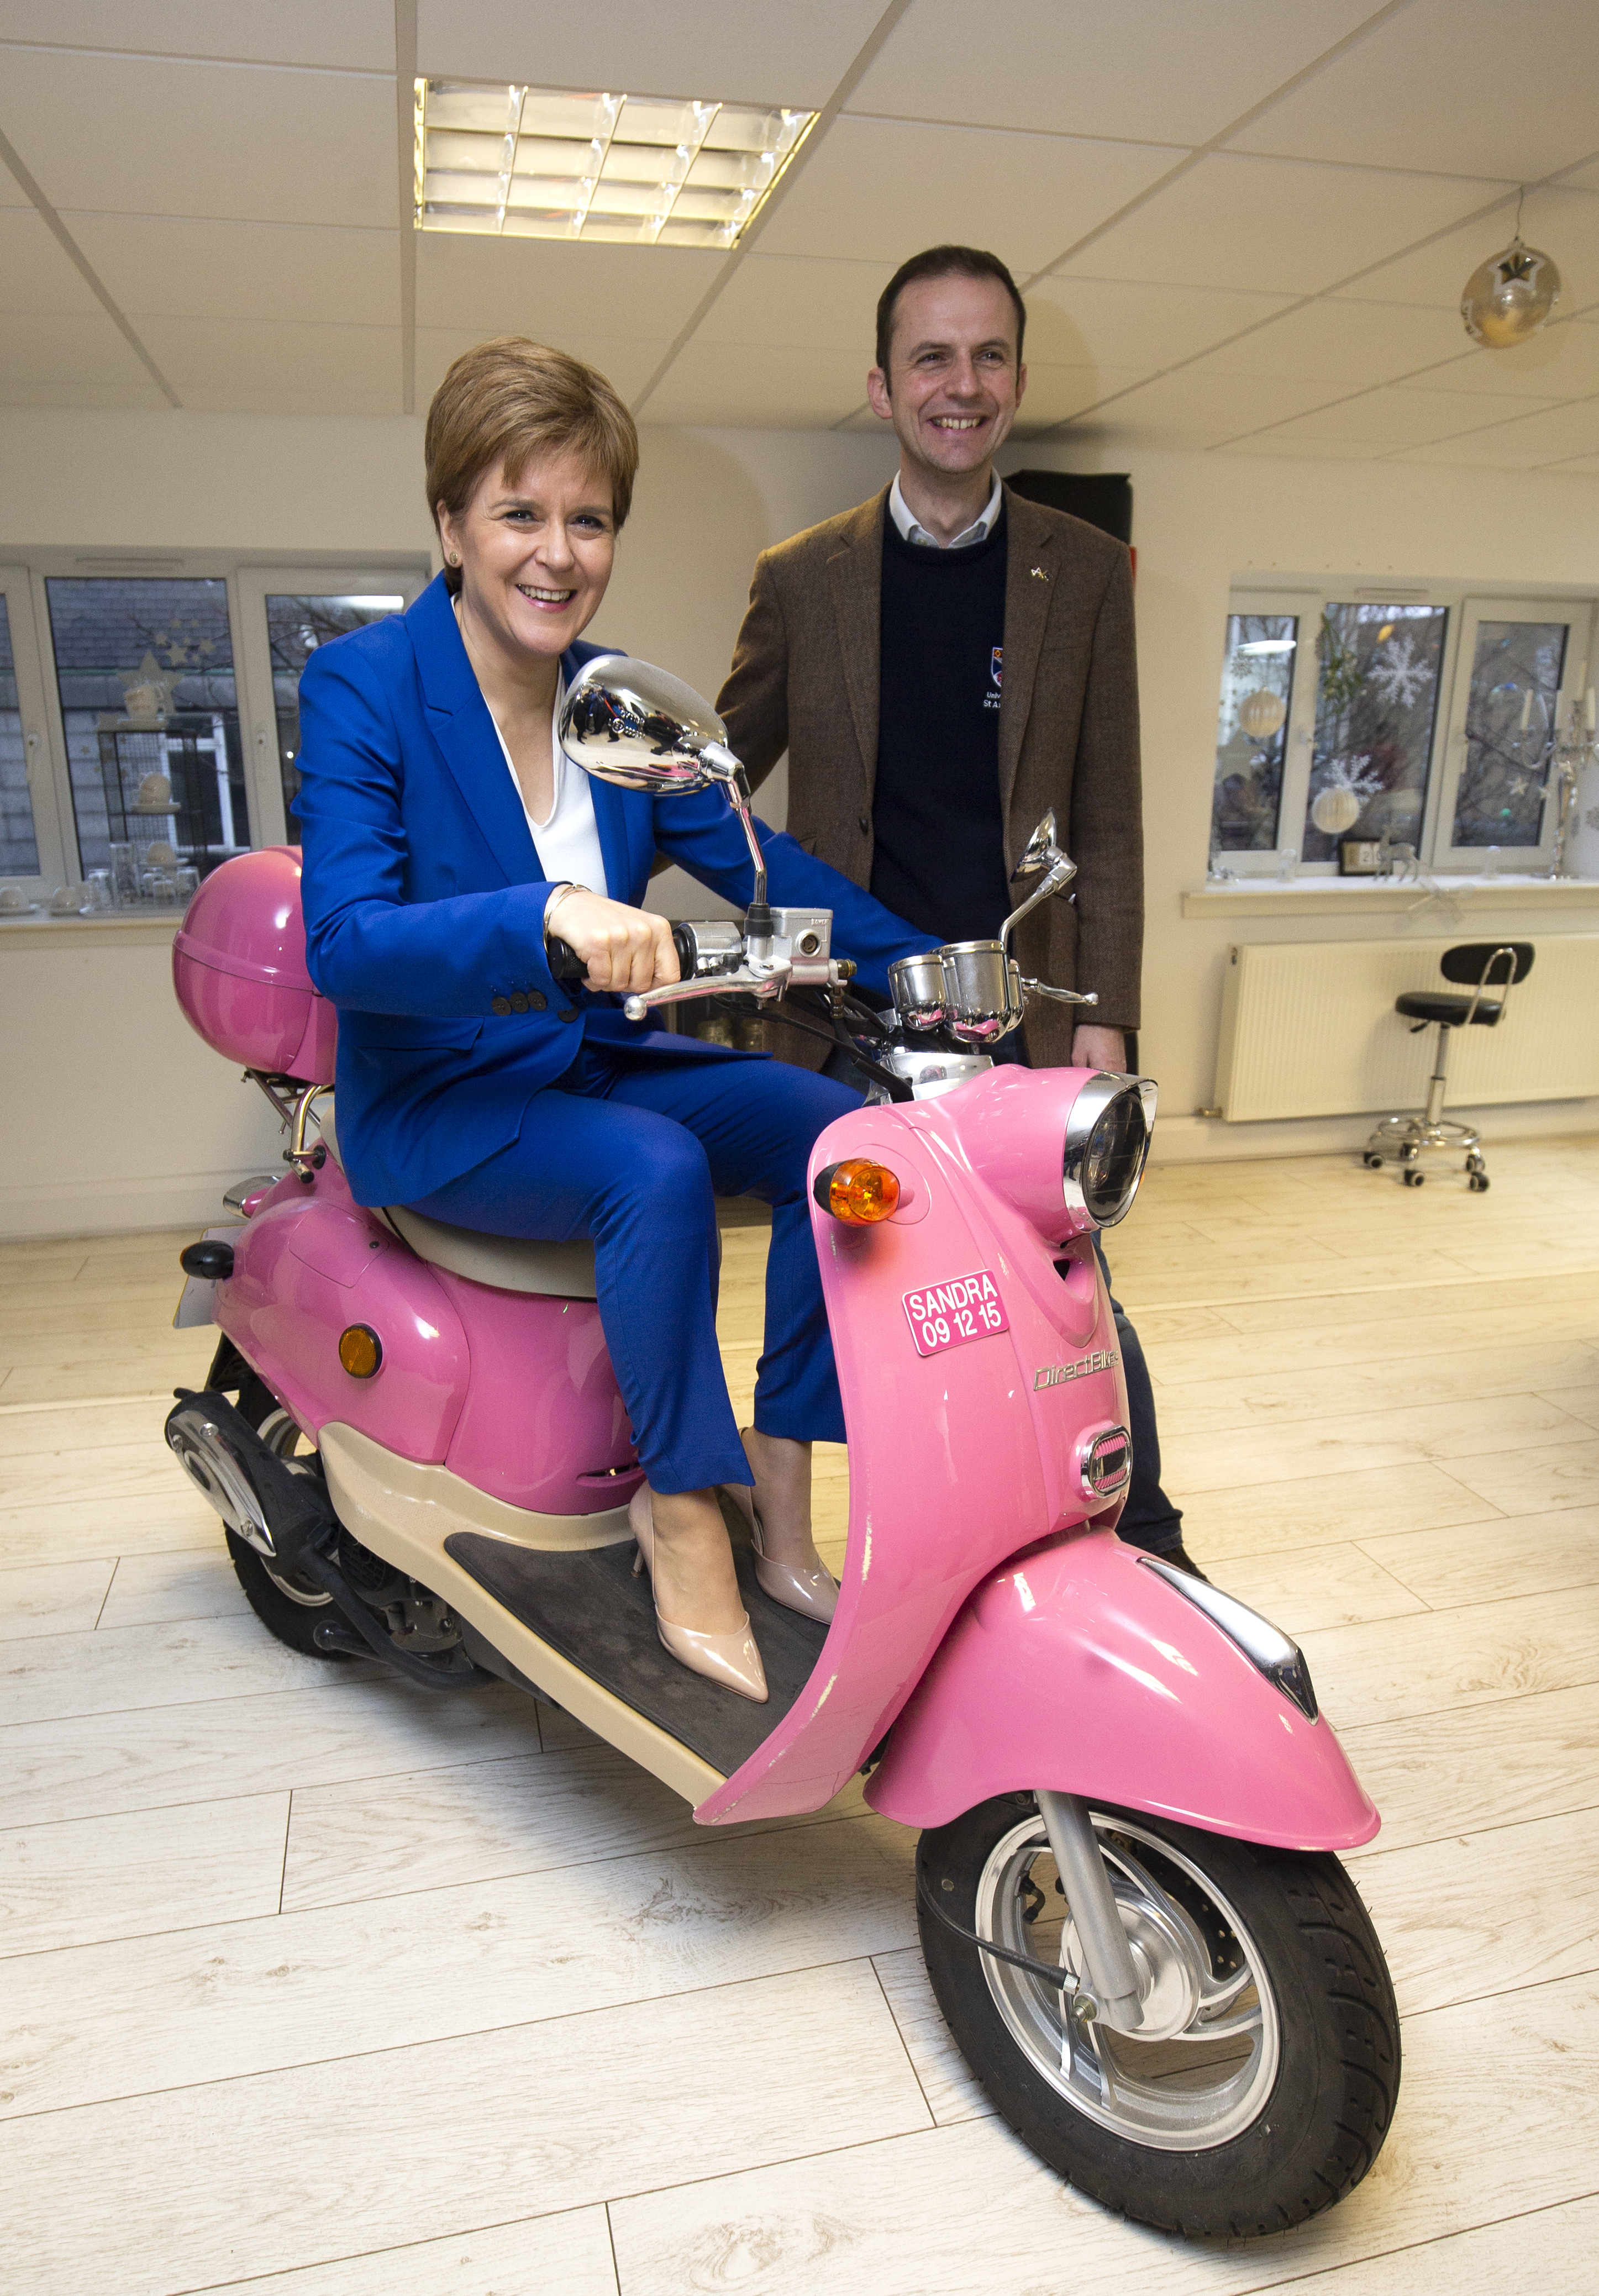 SNP leader Nicola Sturgeon during a visit to Craig Boyd Hairdressing in Leven, Fife, whilst on the General Election campaign trail.